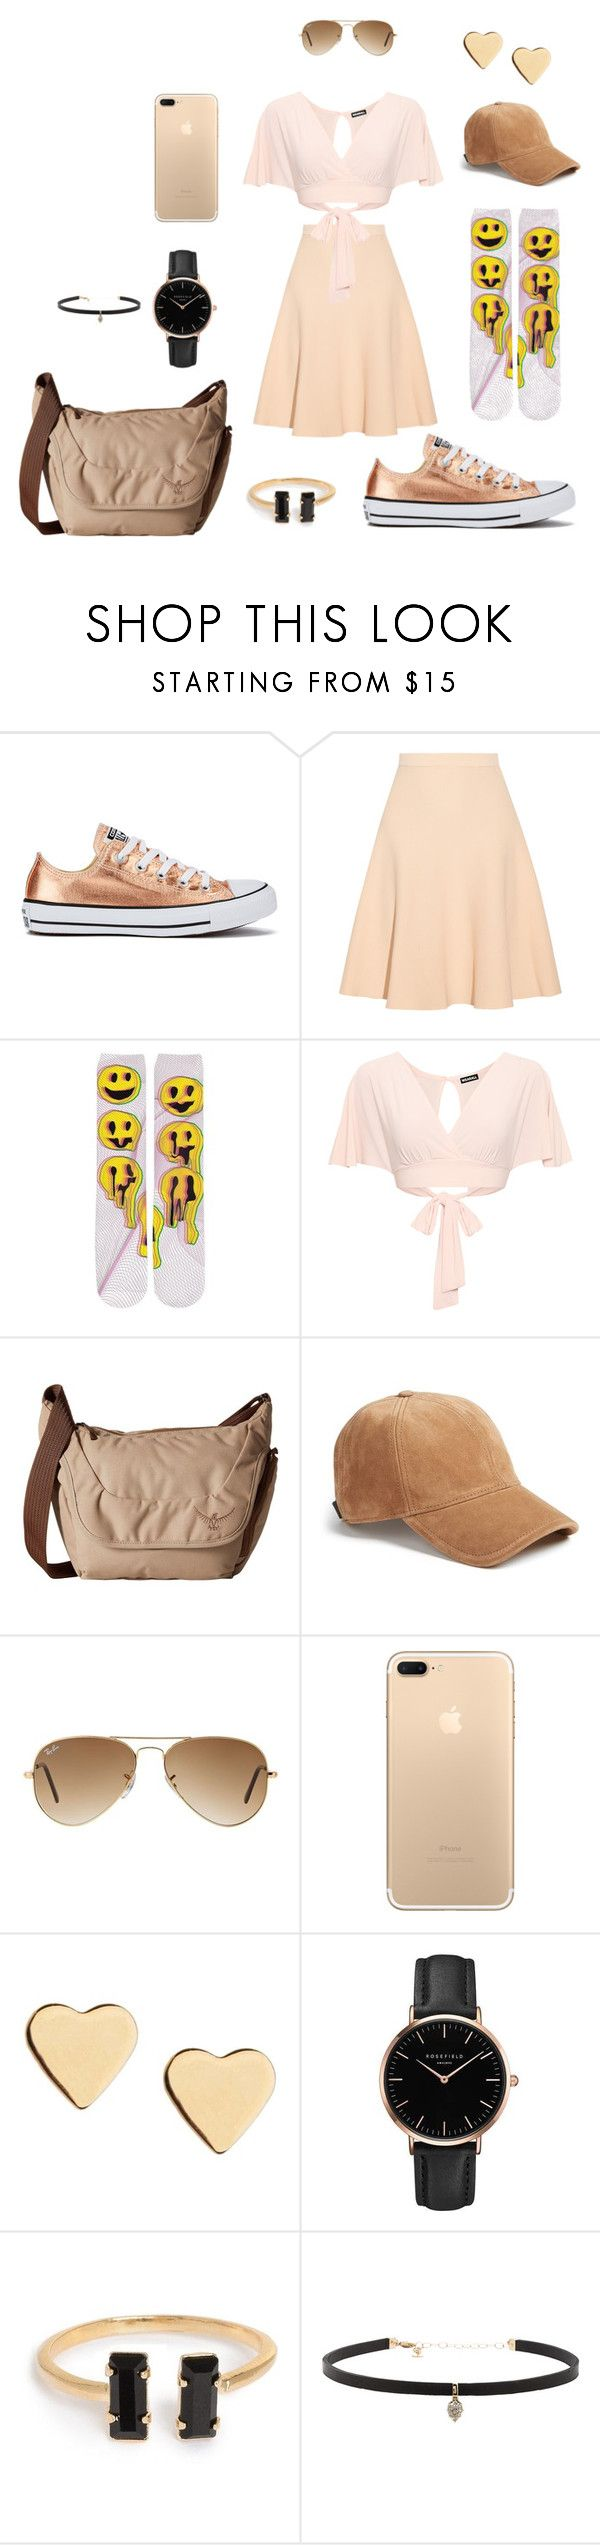 """Untitled #139"" by dance4ever1222 ❤ liked on Polyvore featuring Converse, Jonathan Simkhai, WearAll, Osprey, rag & bone, Ray-Ban, Lipsy, Topshop and Carbon & Hyde"